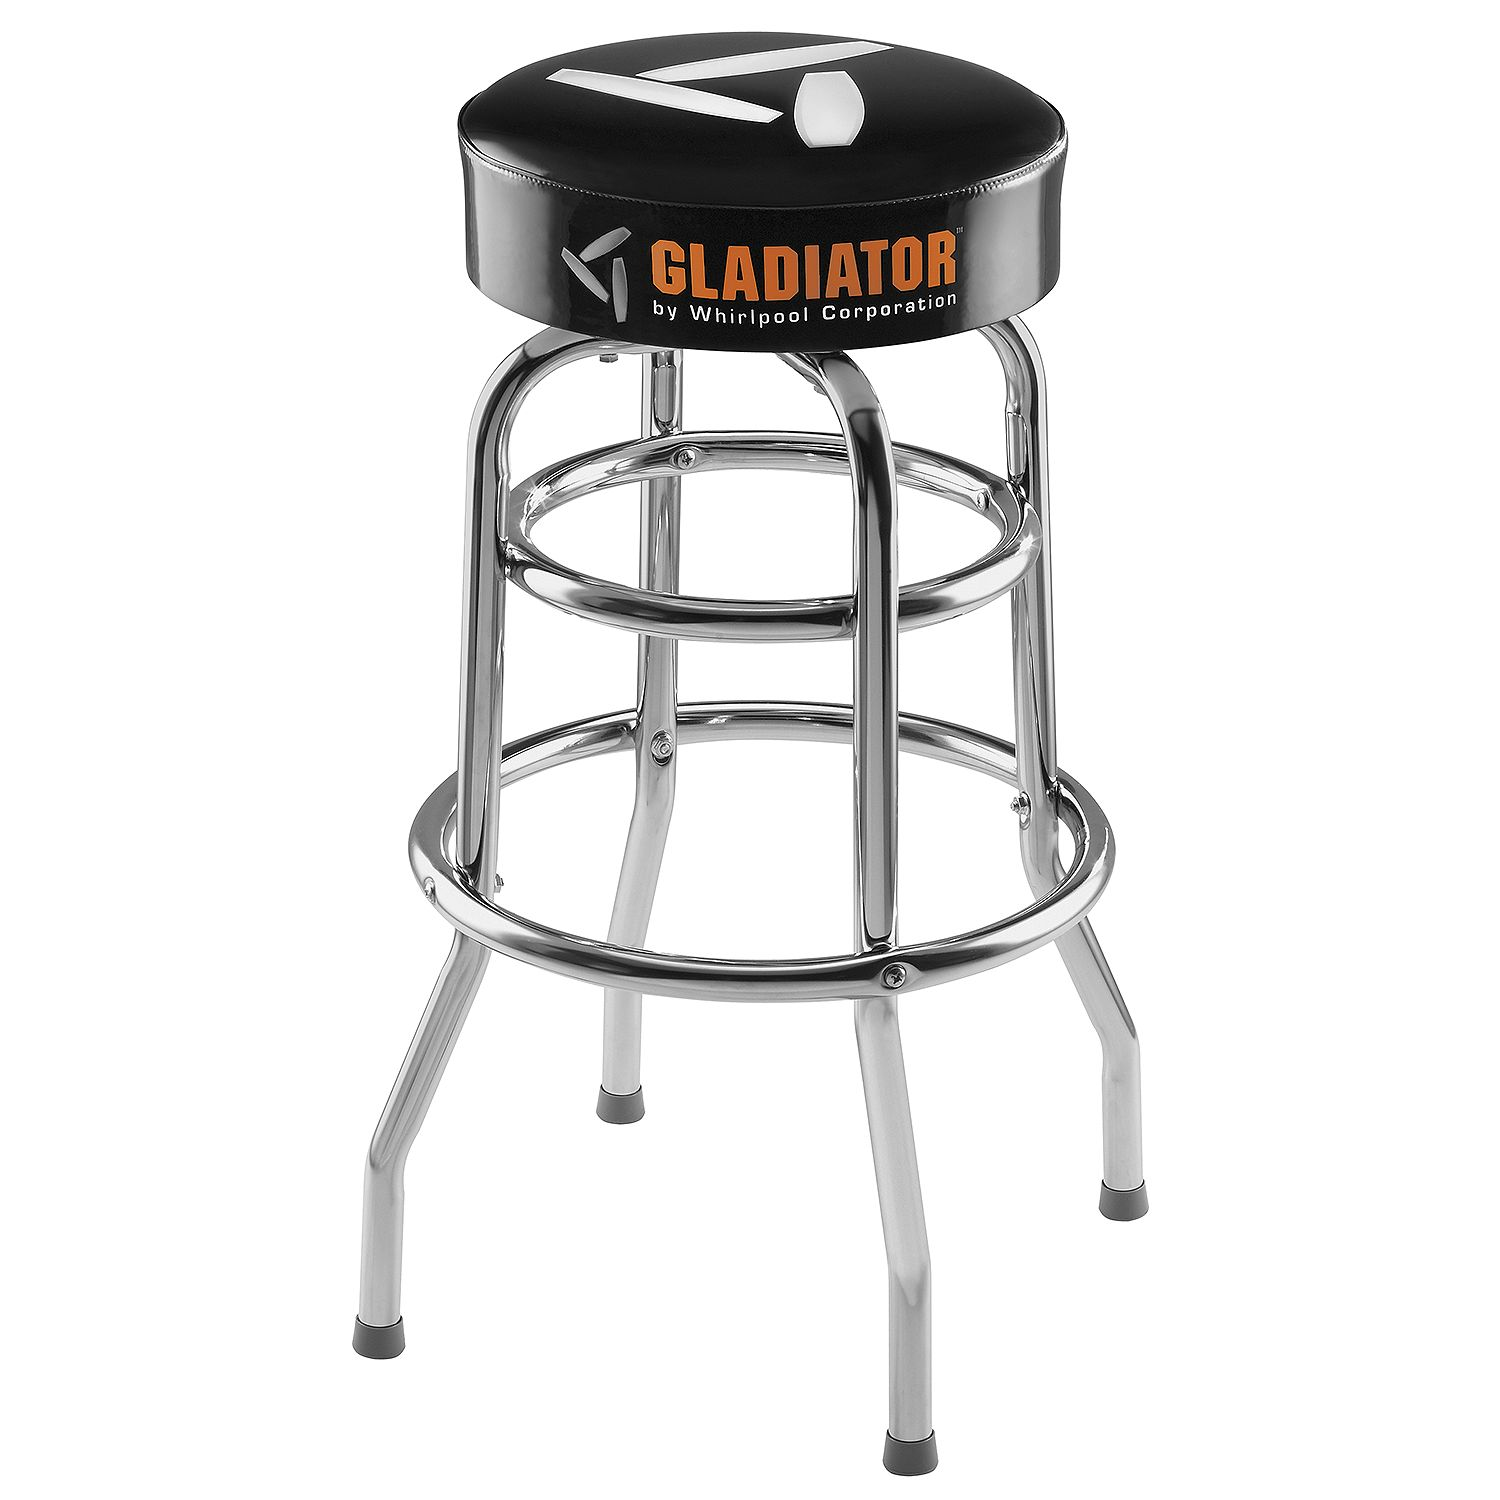 Gladiator Ready To Assemble Padded Swivel Garage Stool in...